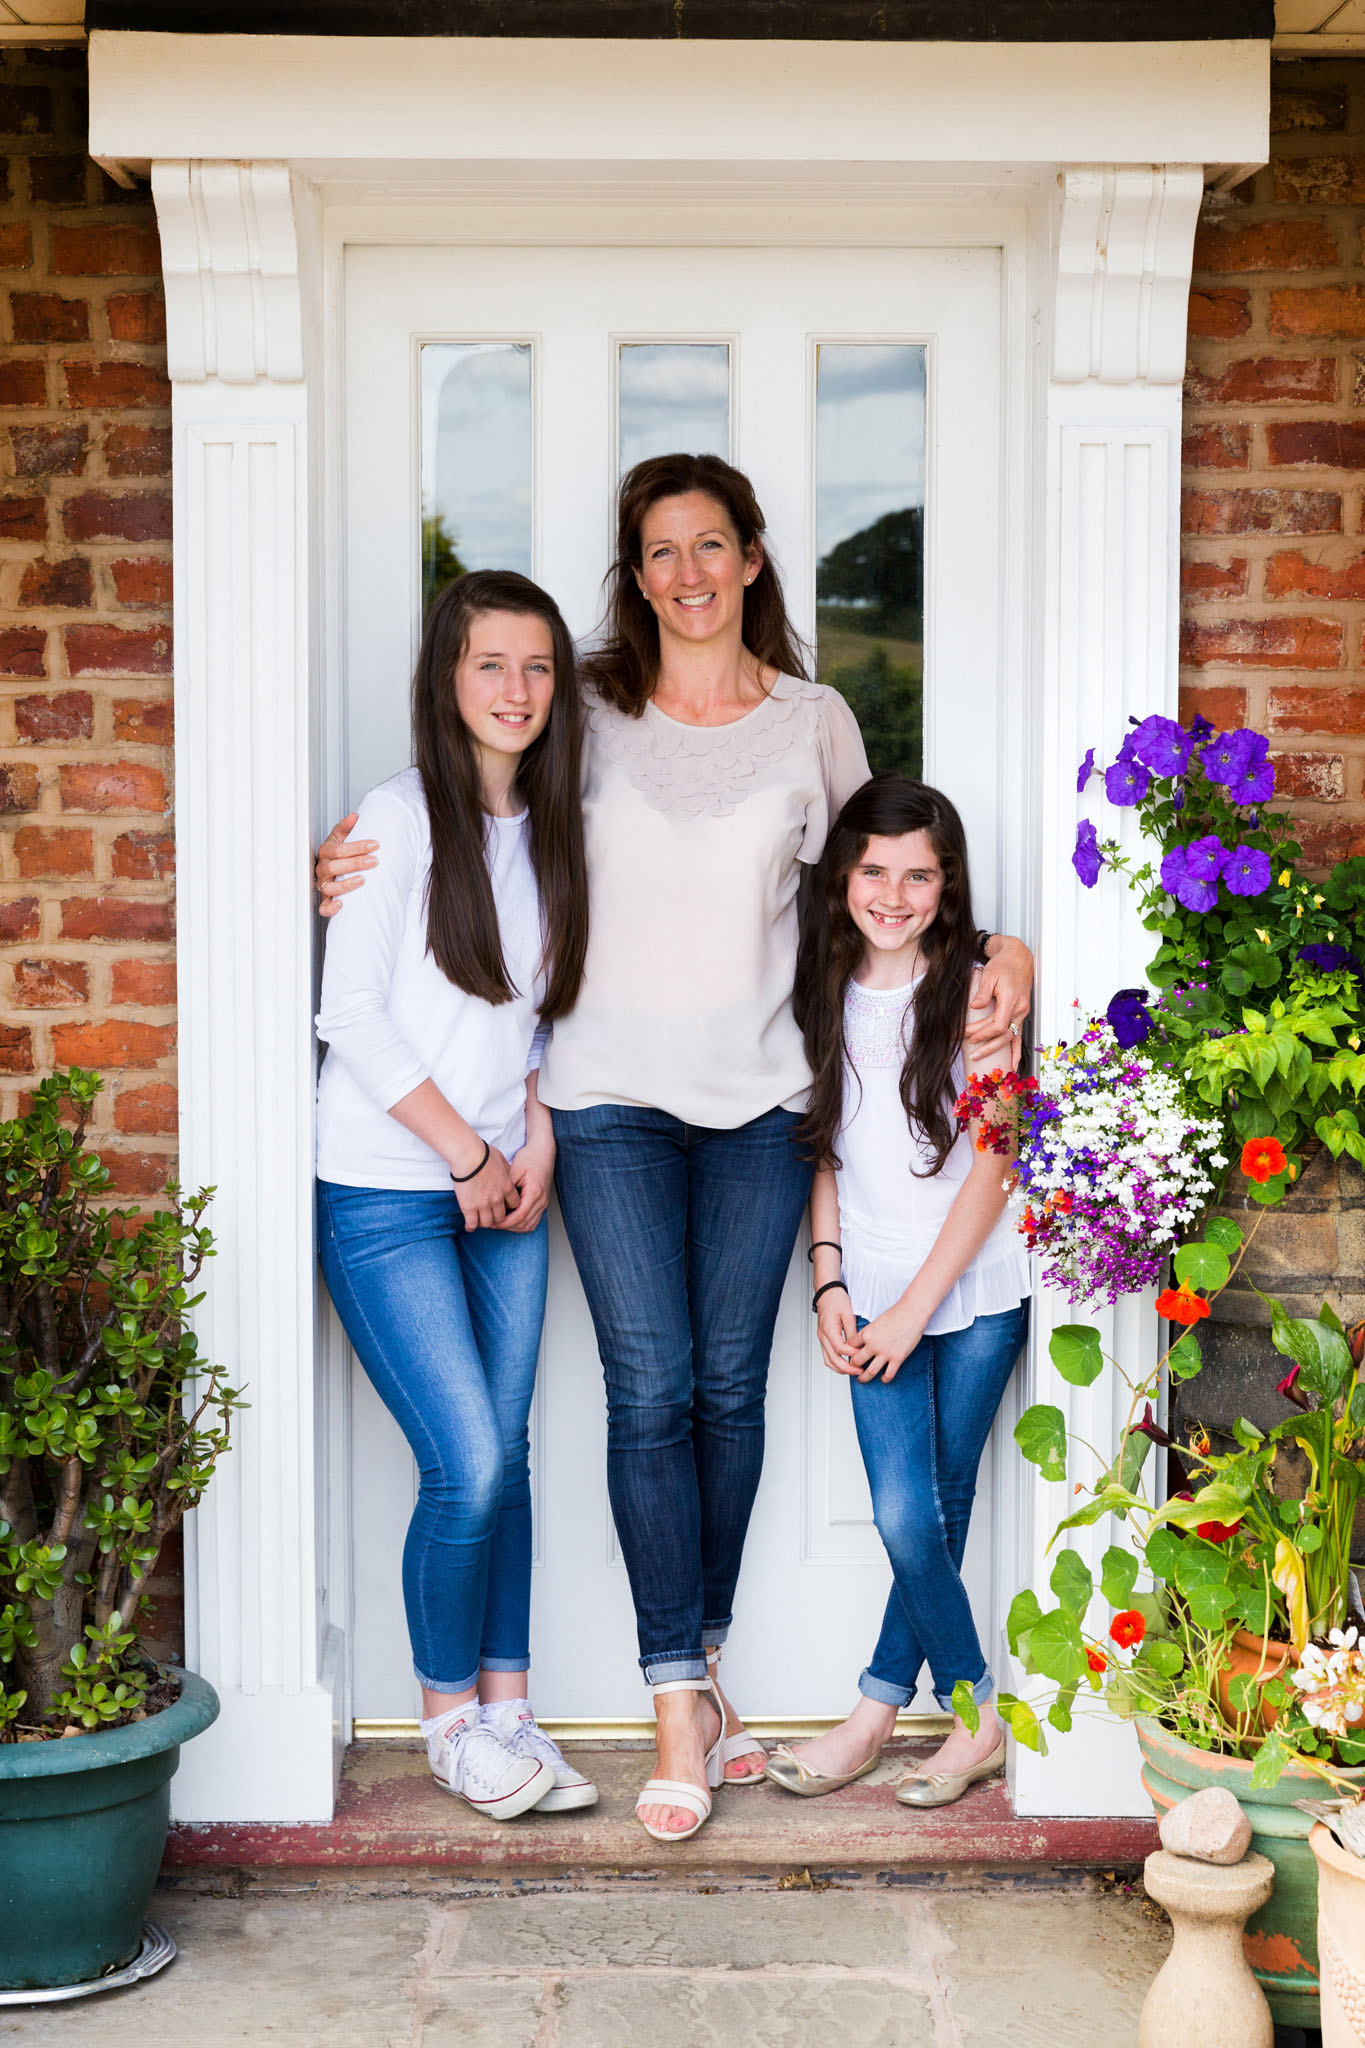 Family portrait photography of a mother and daughters near Altrincham, Cheshire